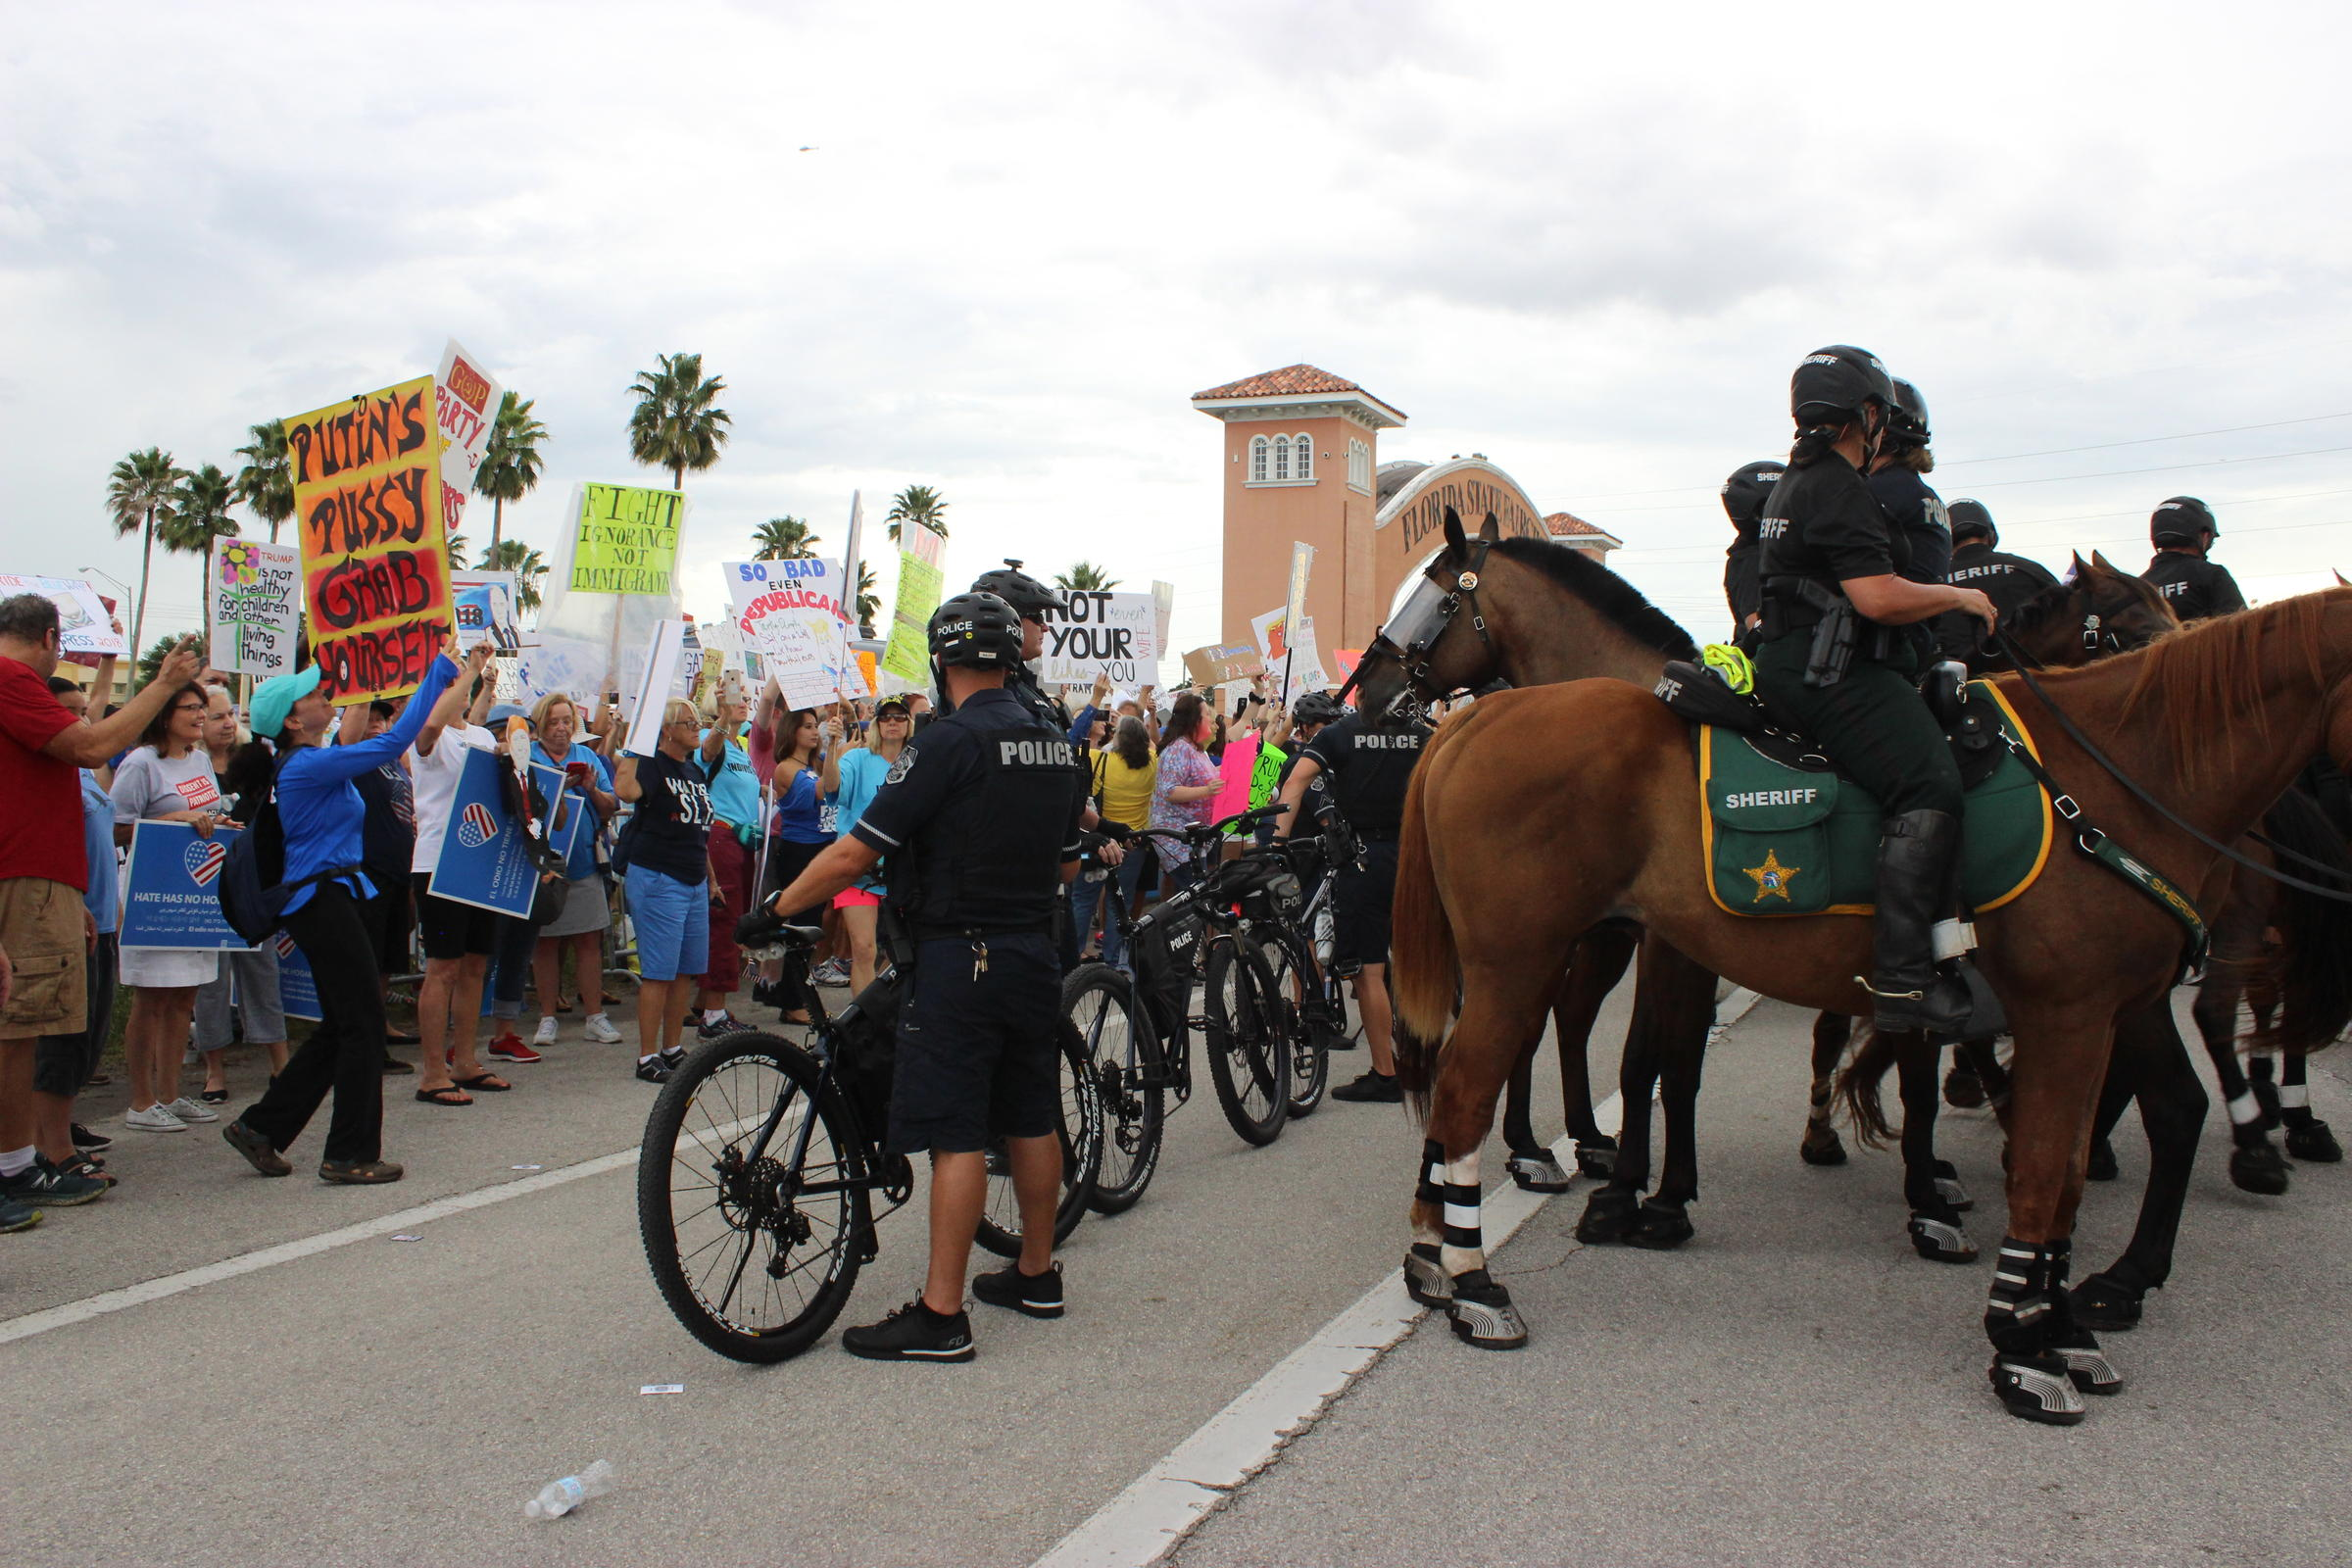 Law enforcement officers on bicycles and horses kept protesters and supporters separated